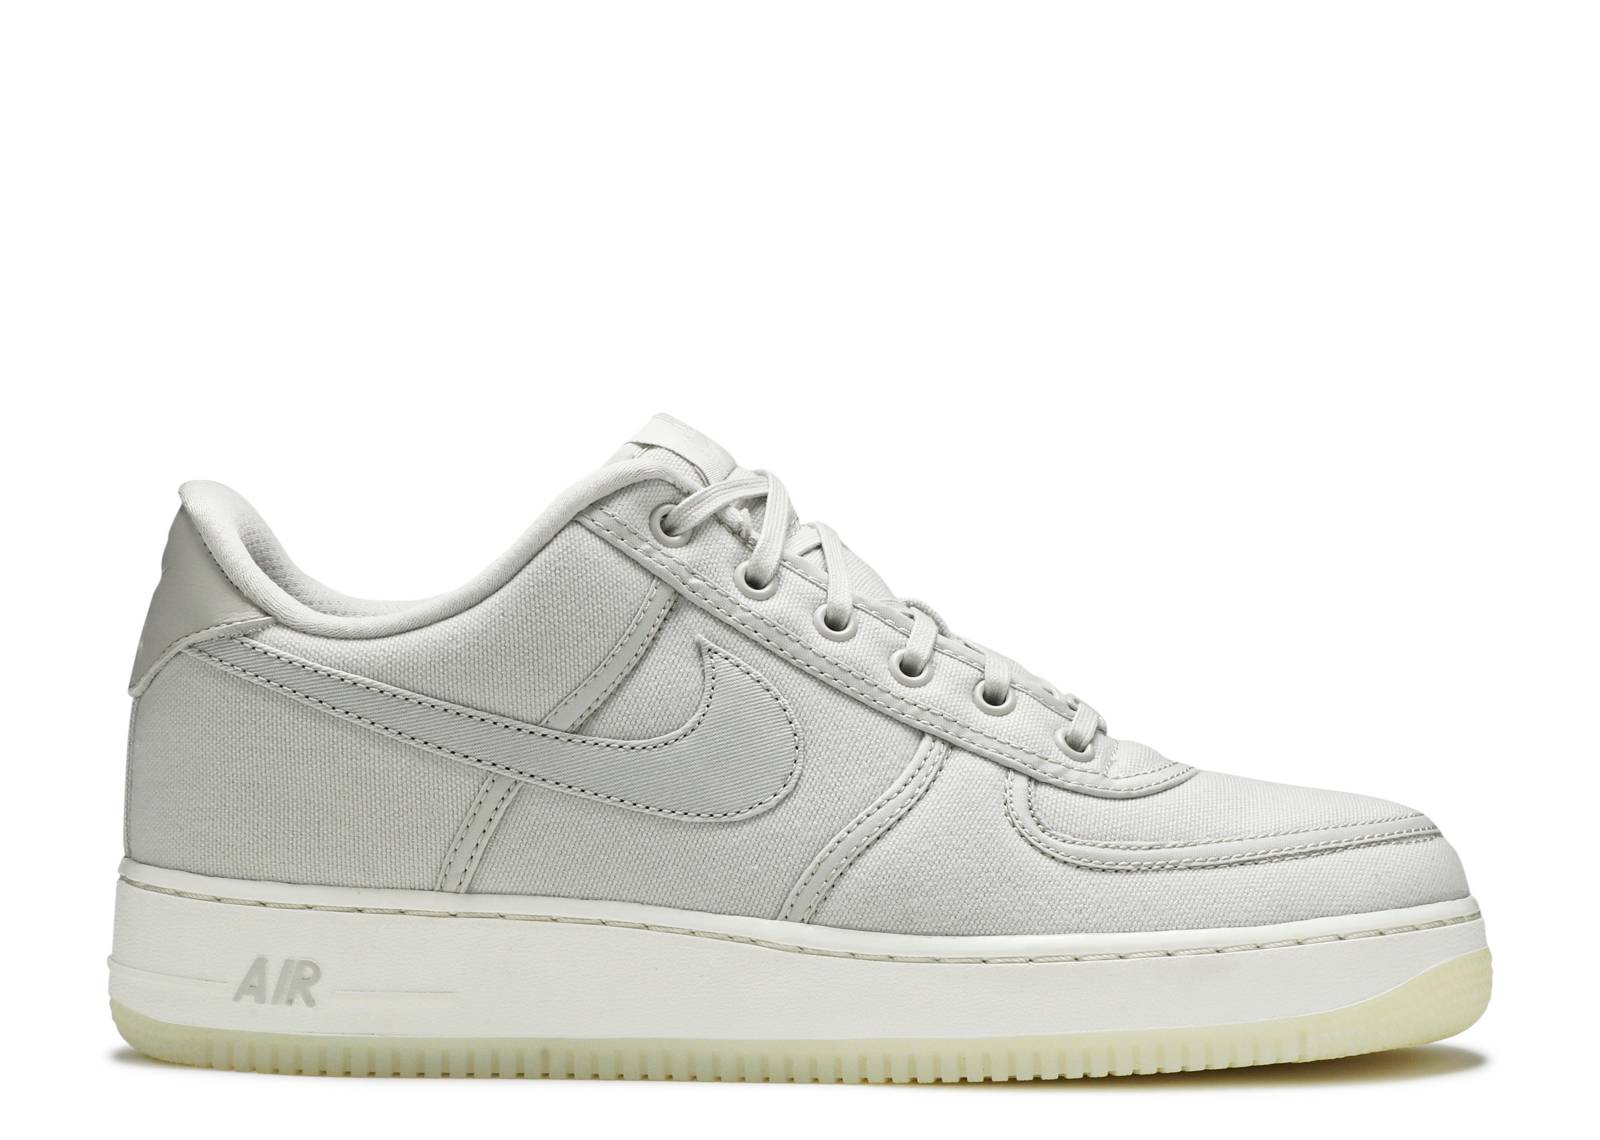 Air Force 1 Low - Nike Air Force - Nike  0dc01688e3